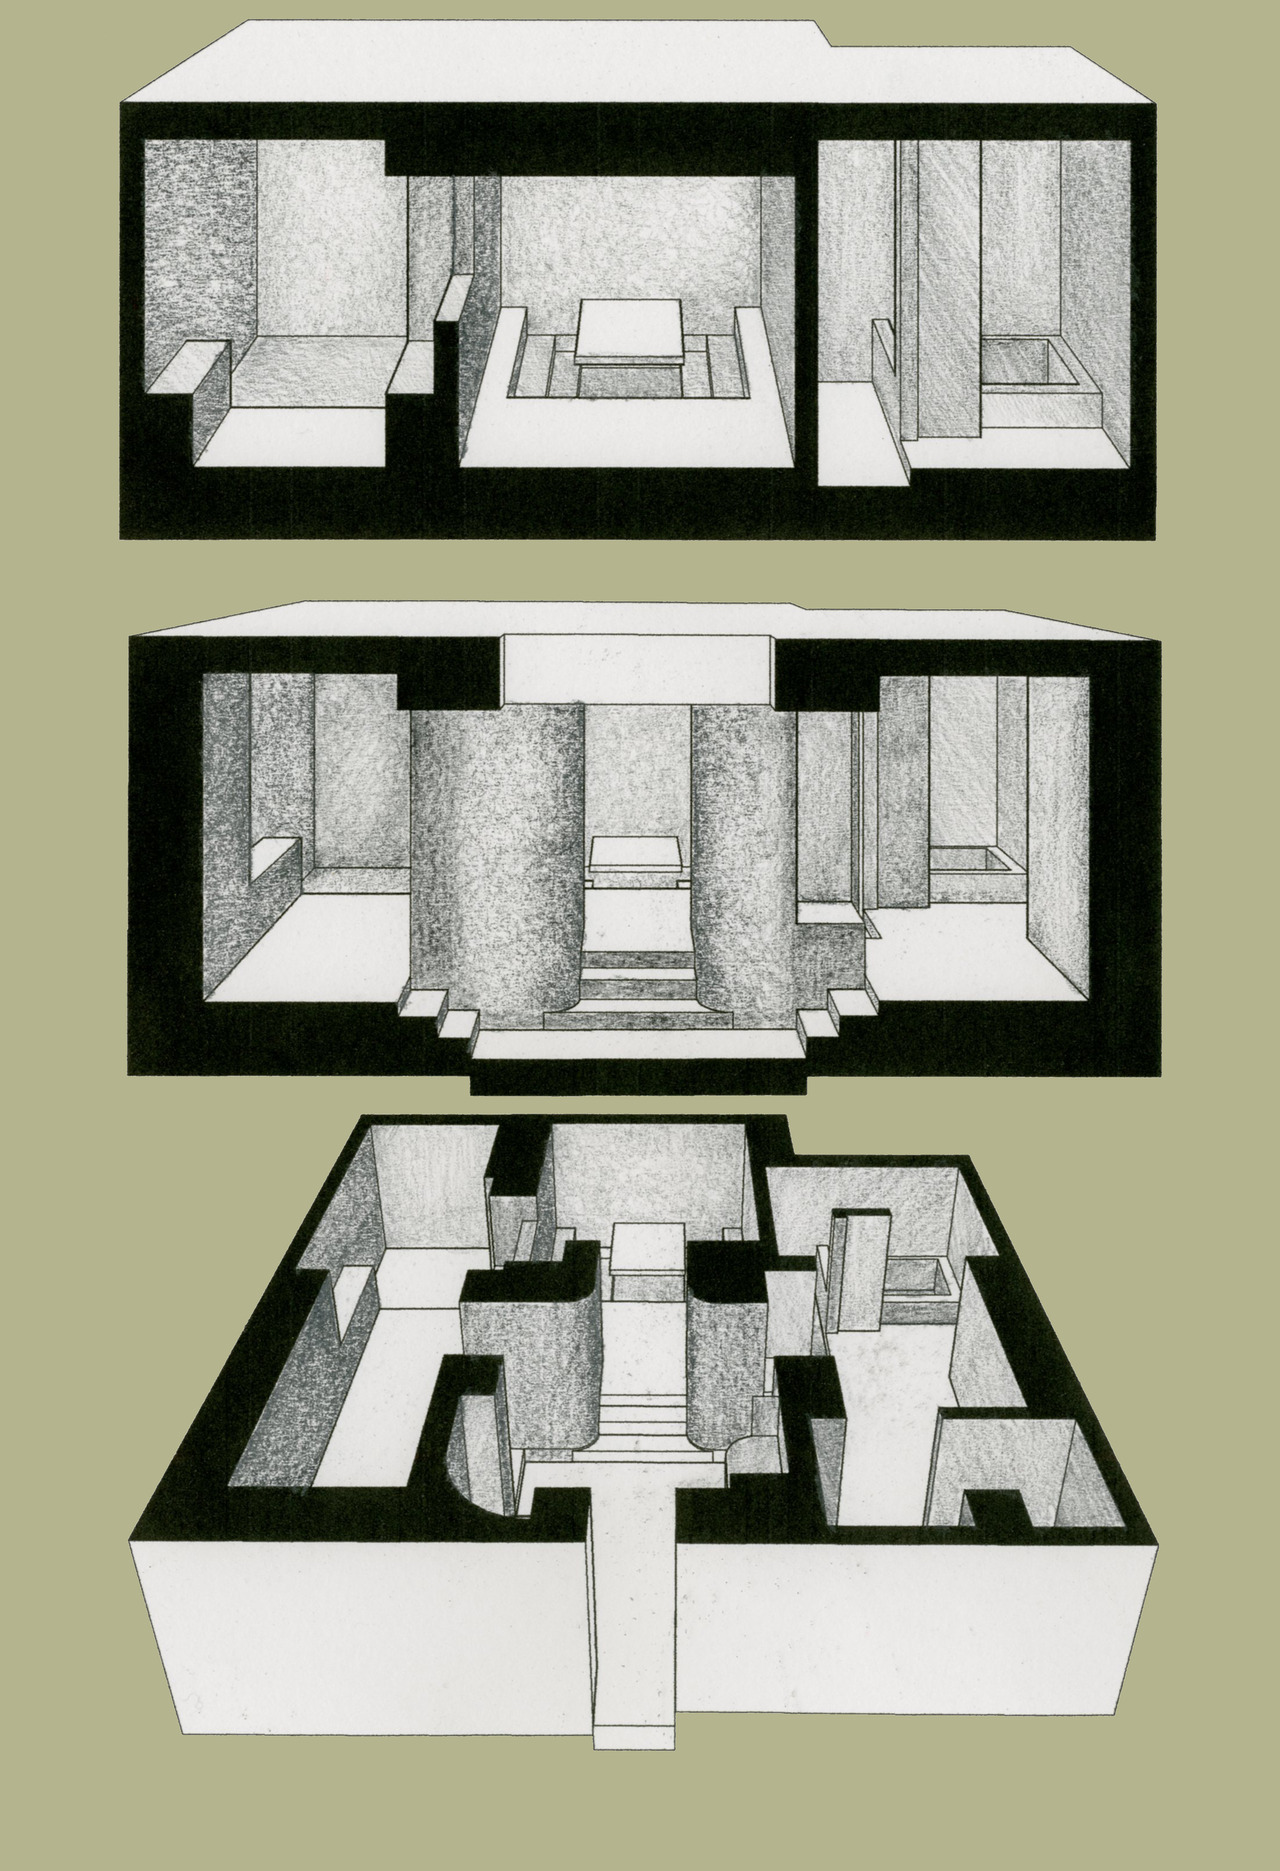 Owen Nichols Room  Sections and plan perspective